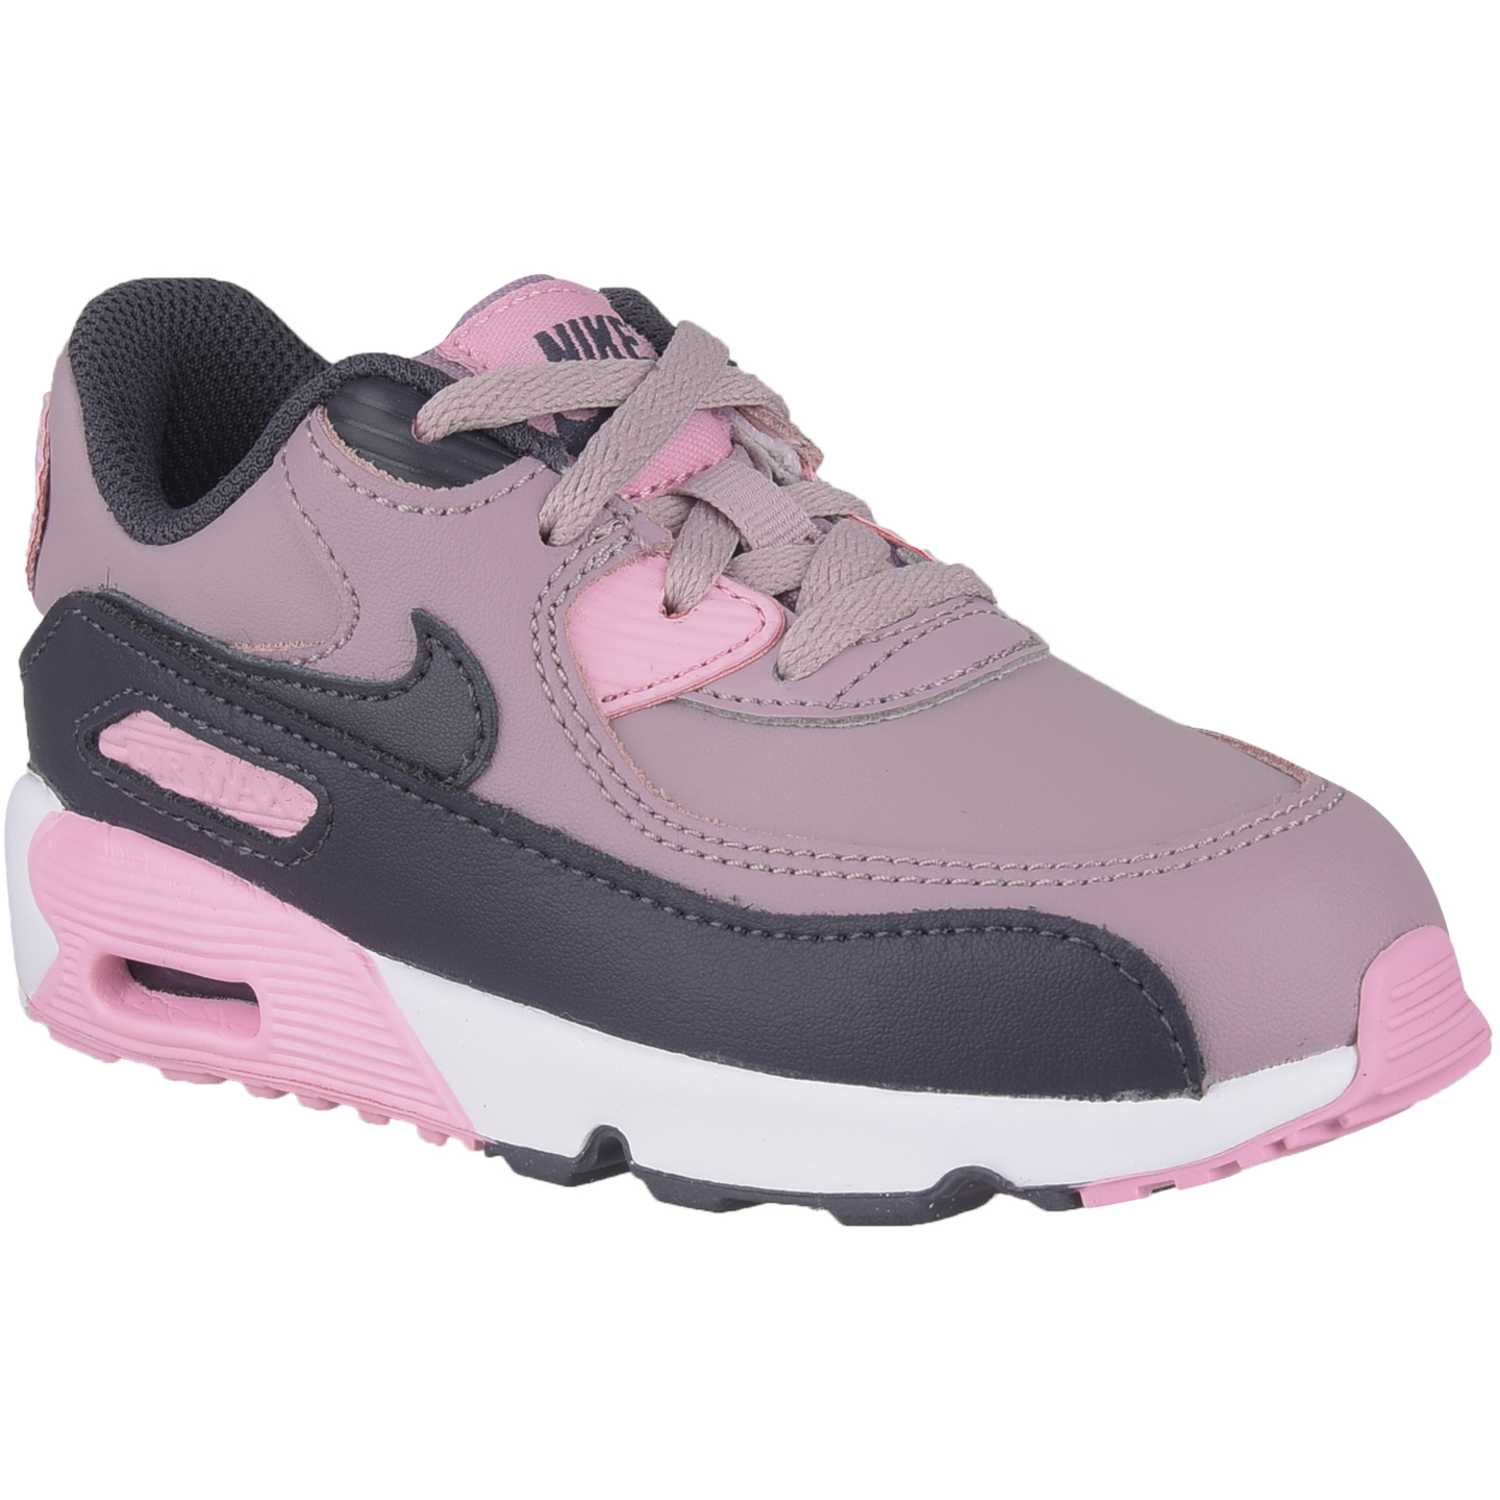 Nike air max 90 ltr gt Rosado / negro Fitness y Cross-Training